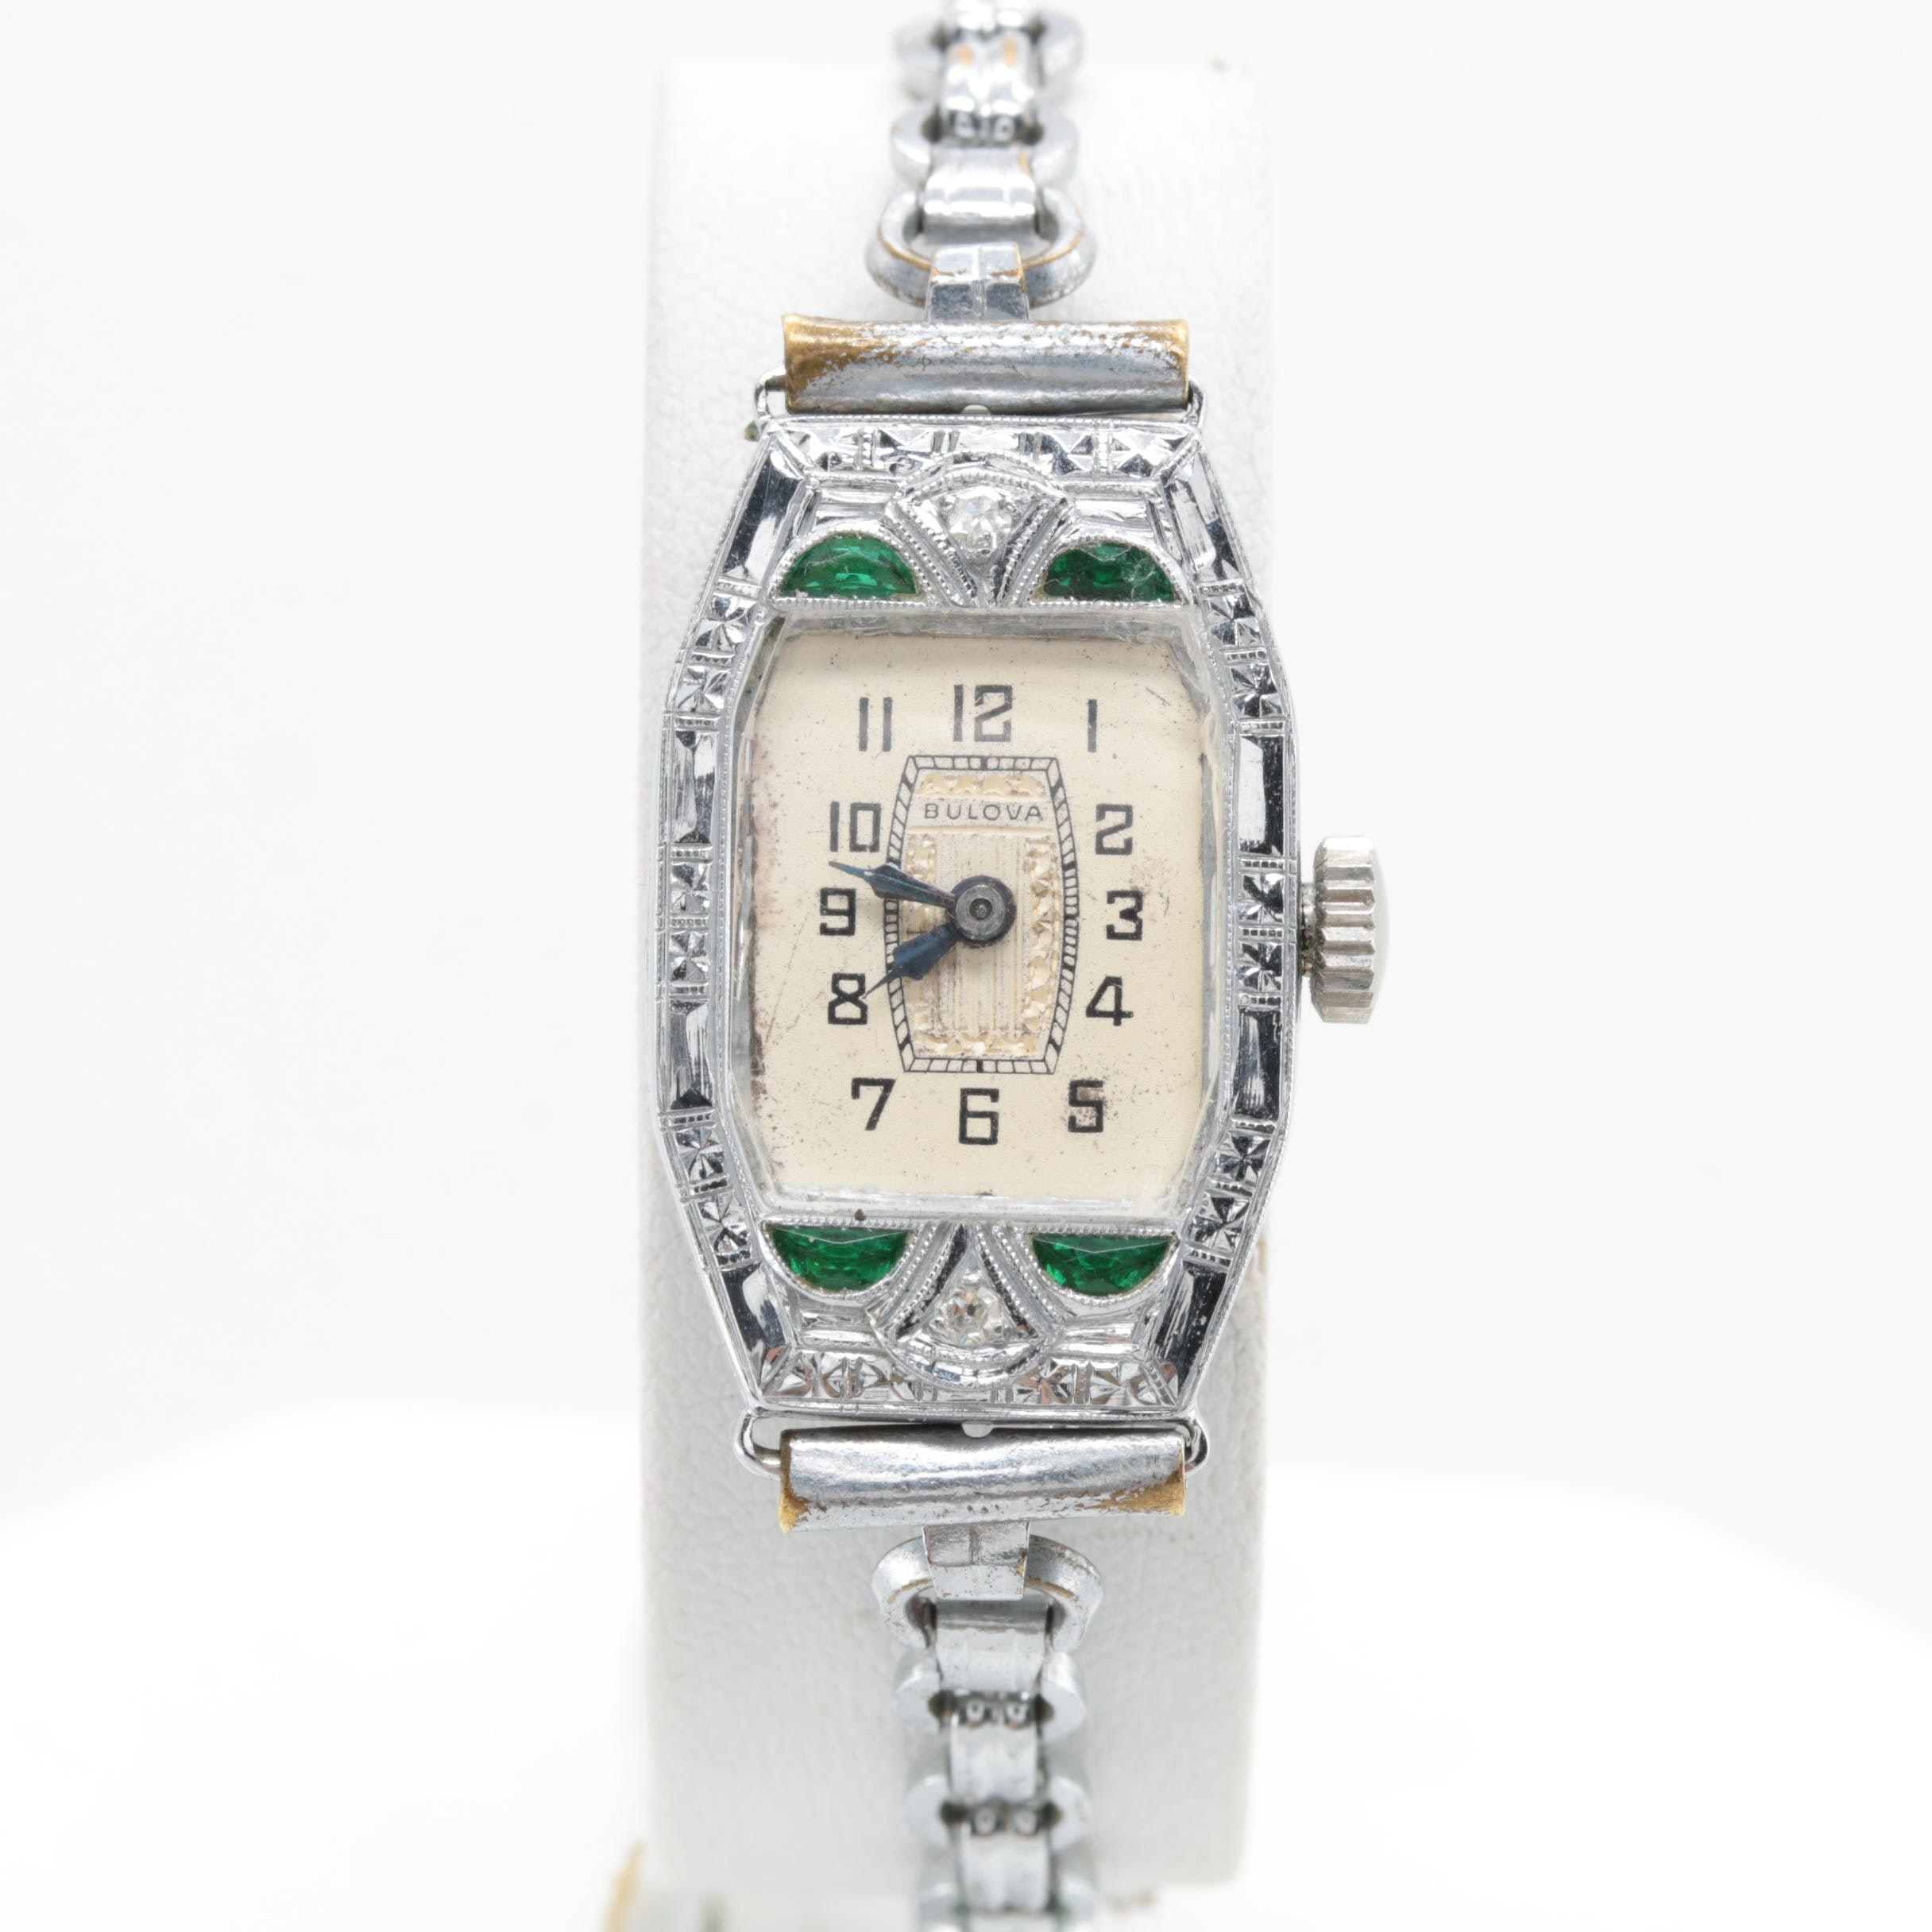 Bulova 14K White Gold Wristwatch Featuring Diamonds and Green Glass